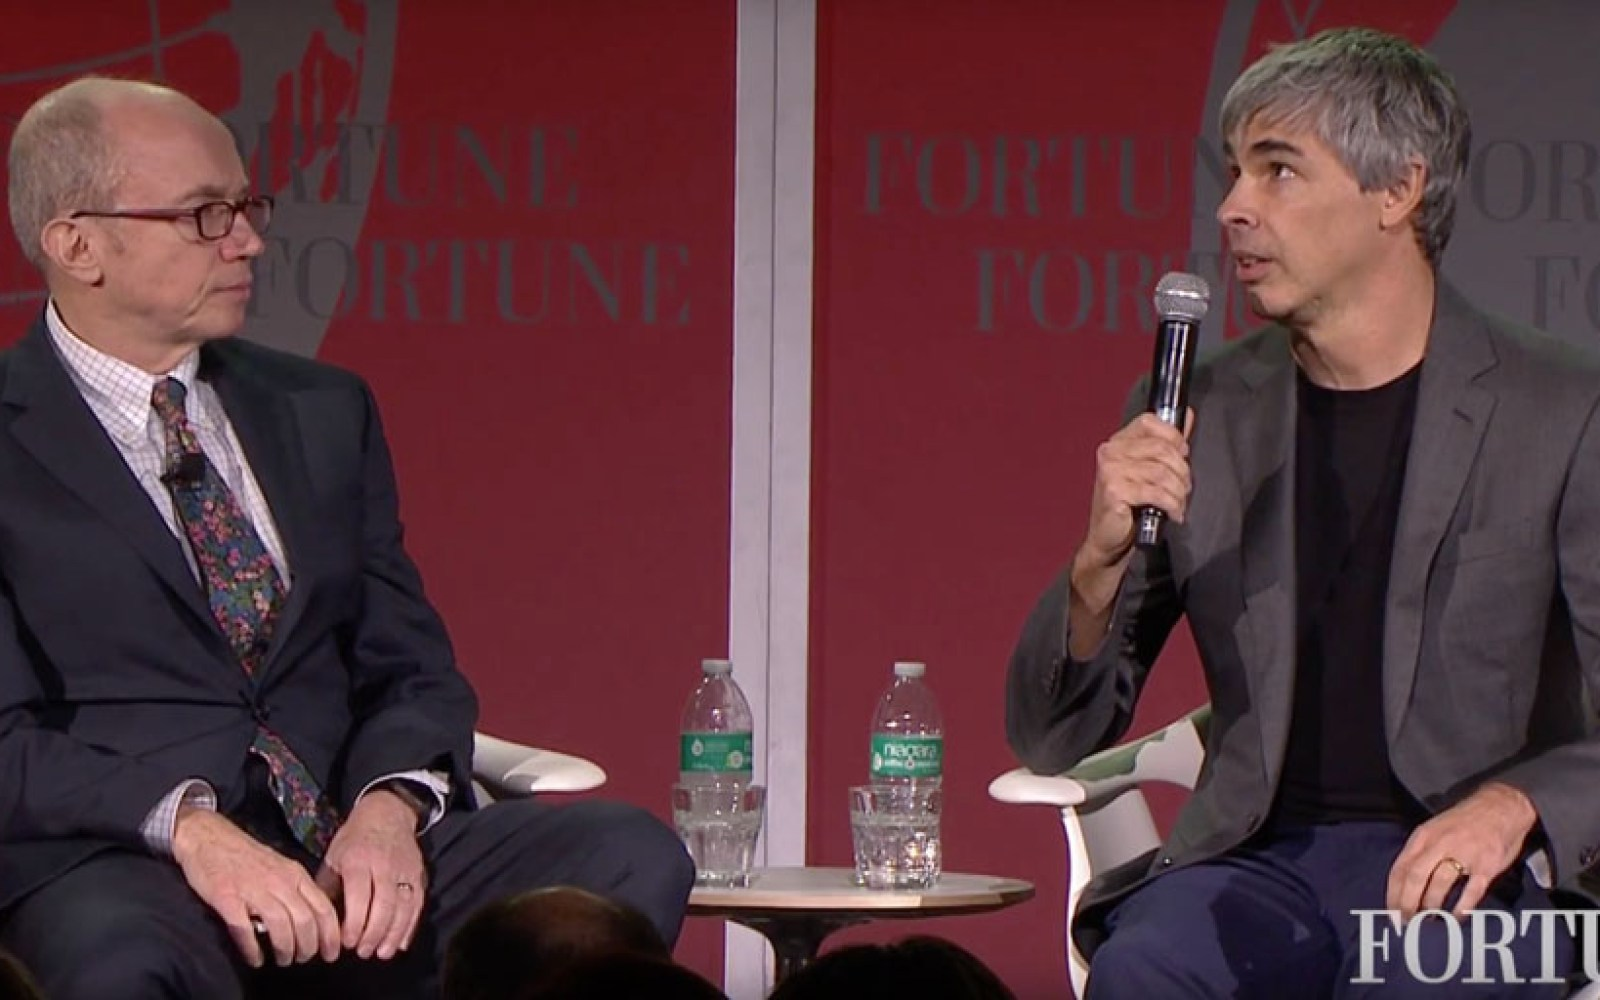 Larry Page gives first major interview since formation of Alphabet, talks worries, privacy, Project Loon, Steve Jobs [Video]